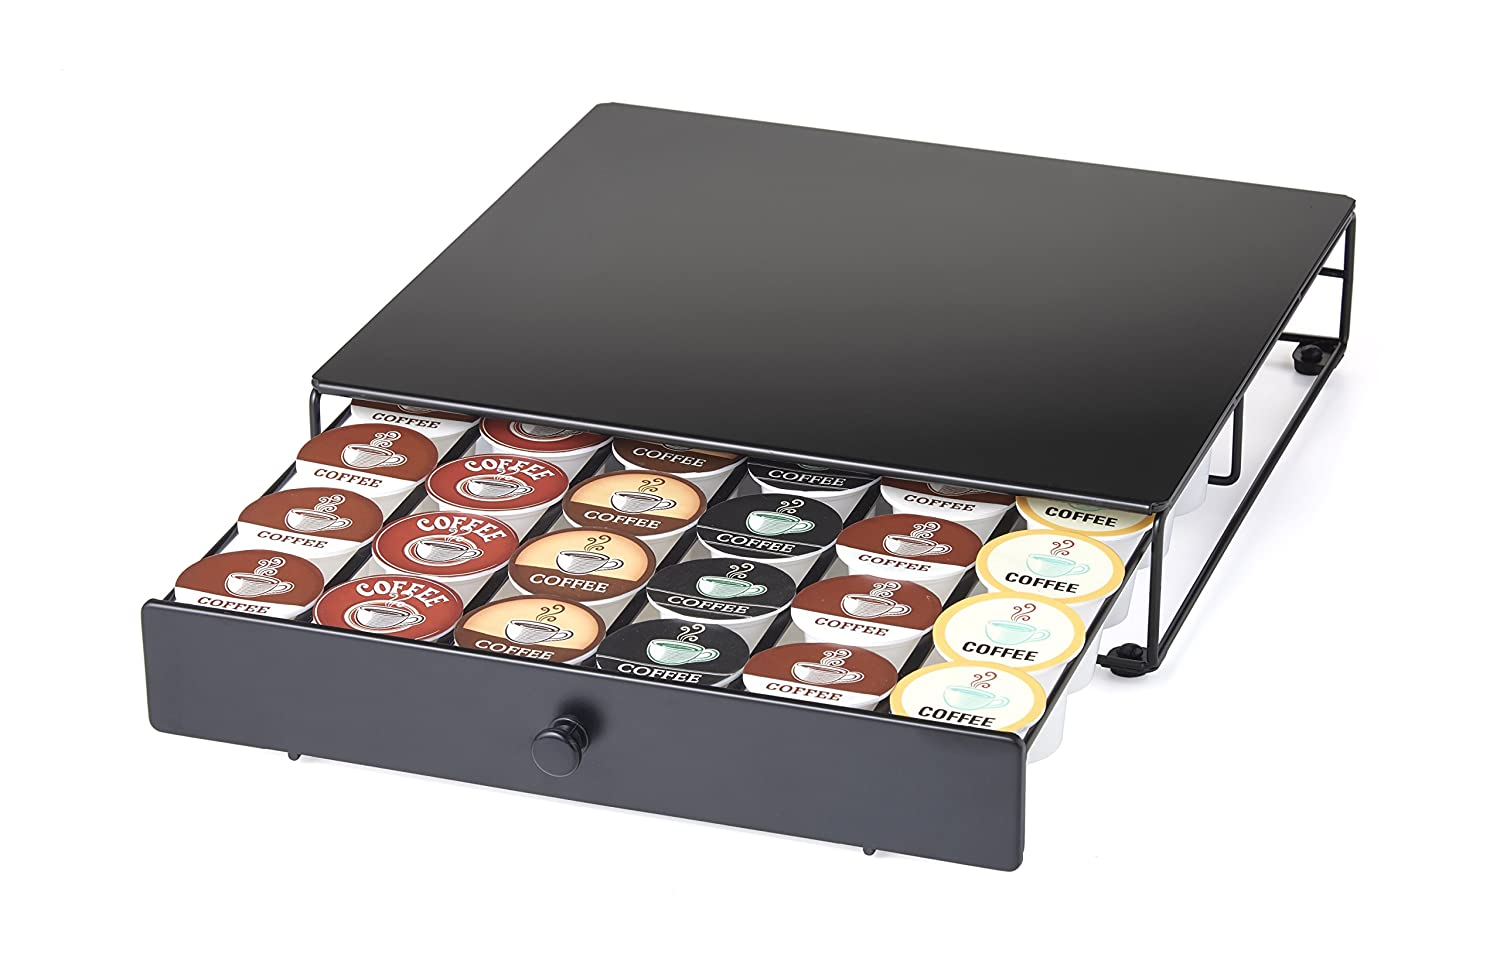 Storage Drawer for K-Cup Pods. Store Pods Underneath the Brewer to Save Space. Organizes 36 Pods